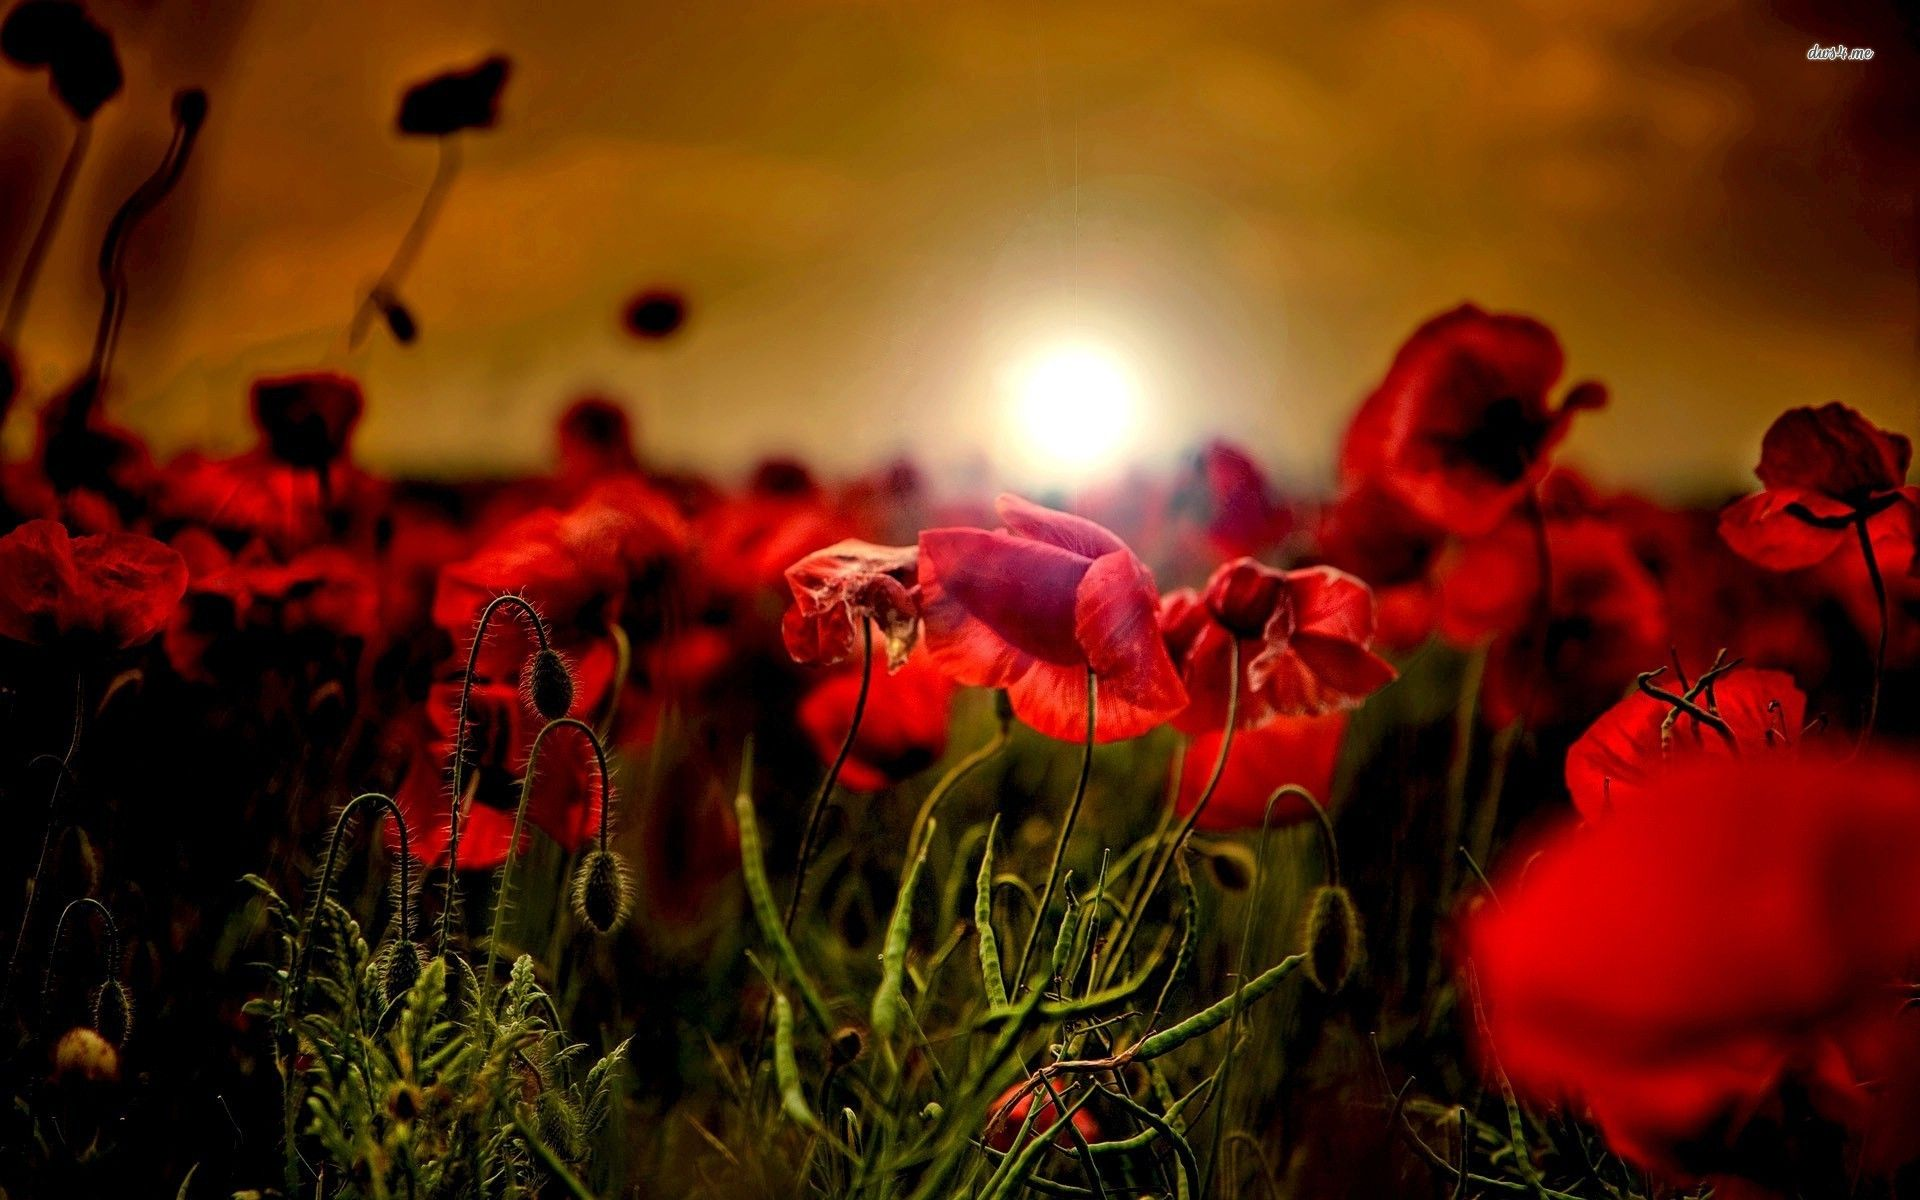 poppy hd wallpapers backgrounds wallpaper 1600a—900 poppy images wallpapers 38 wallpapers